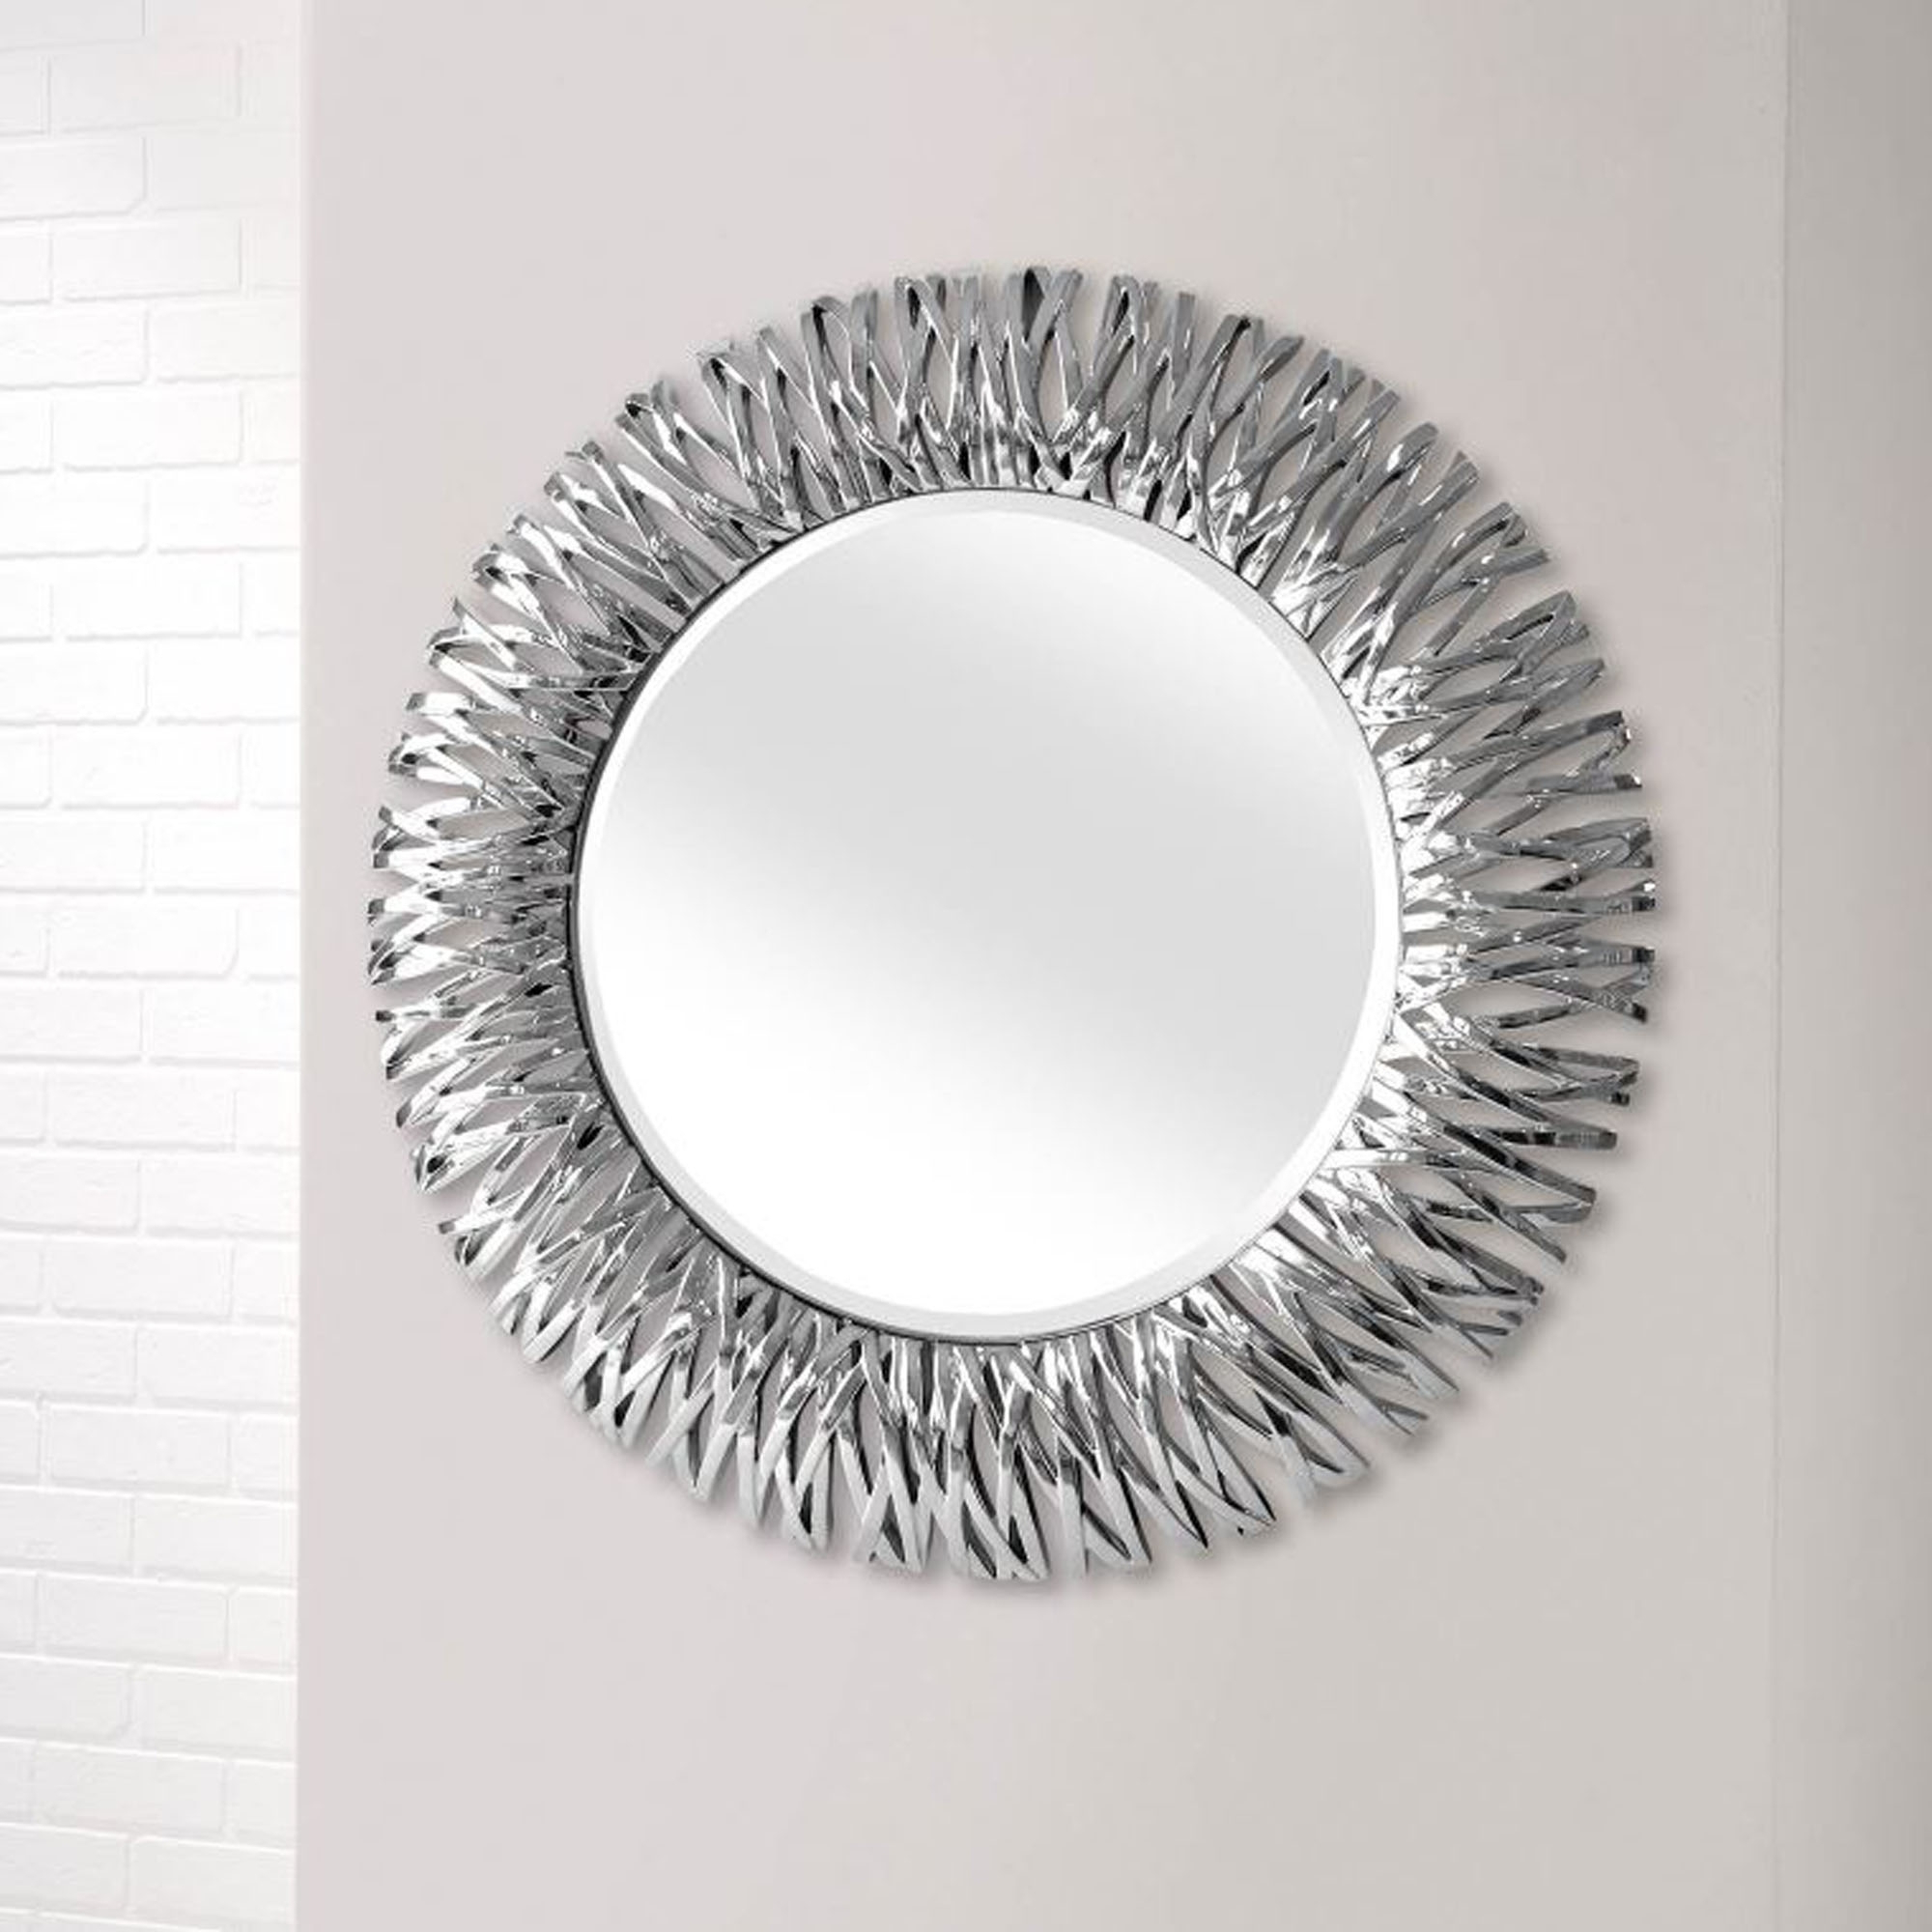 Detailed Chrome Silver Round Wall Mirror Pertaining To Popular Silver Round Wall Mirrors (View 4 of 20)